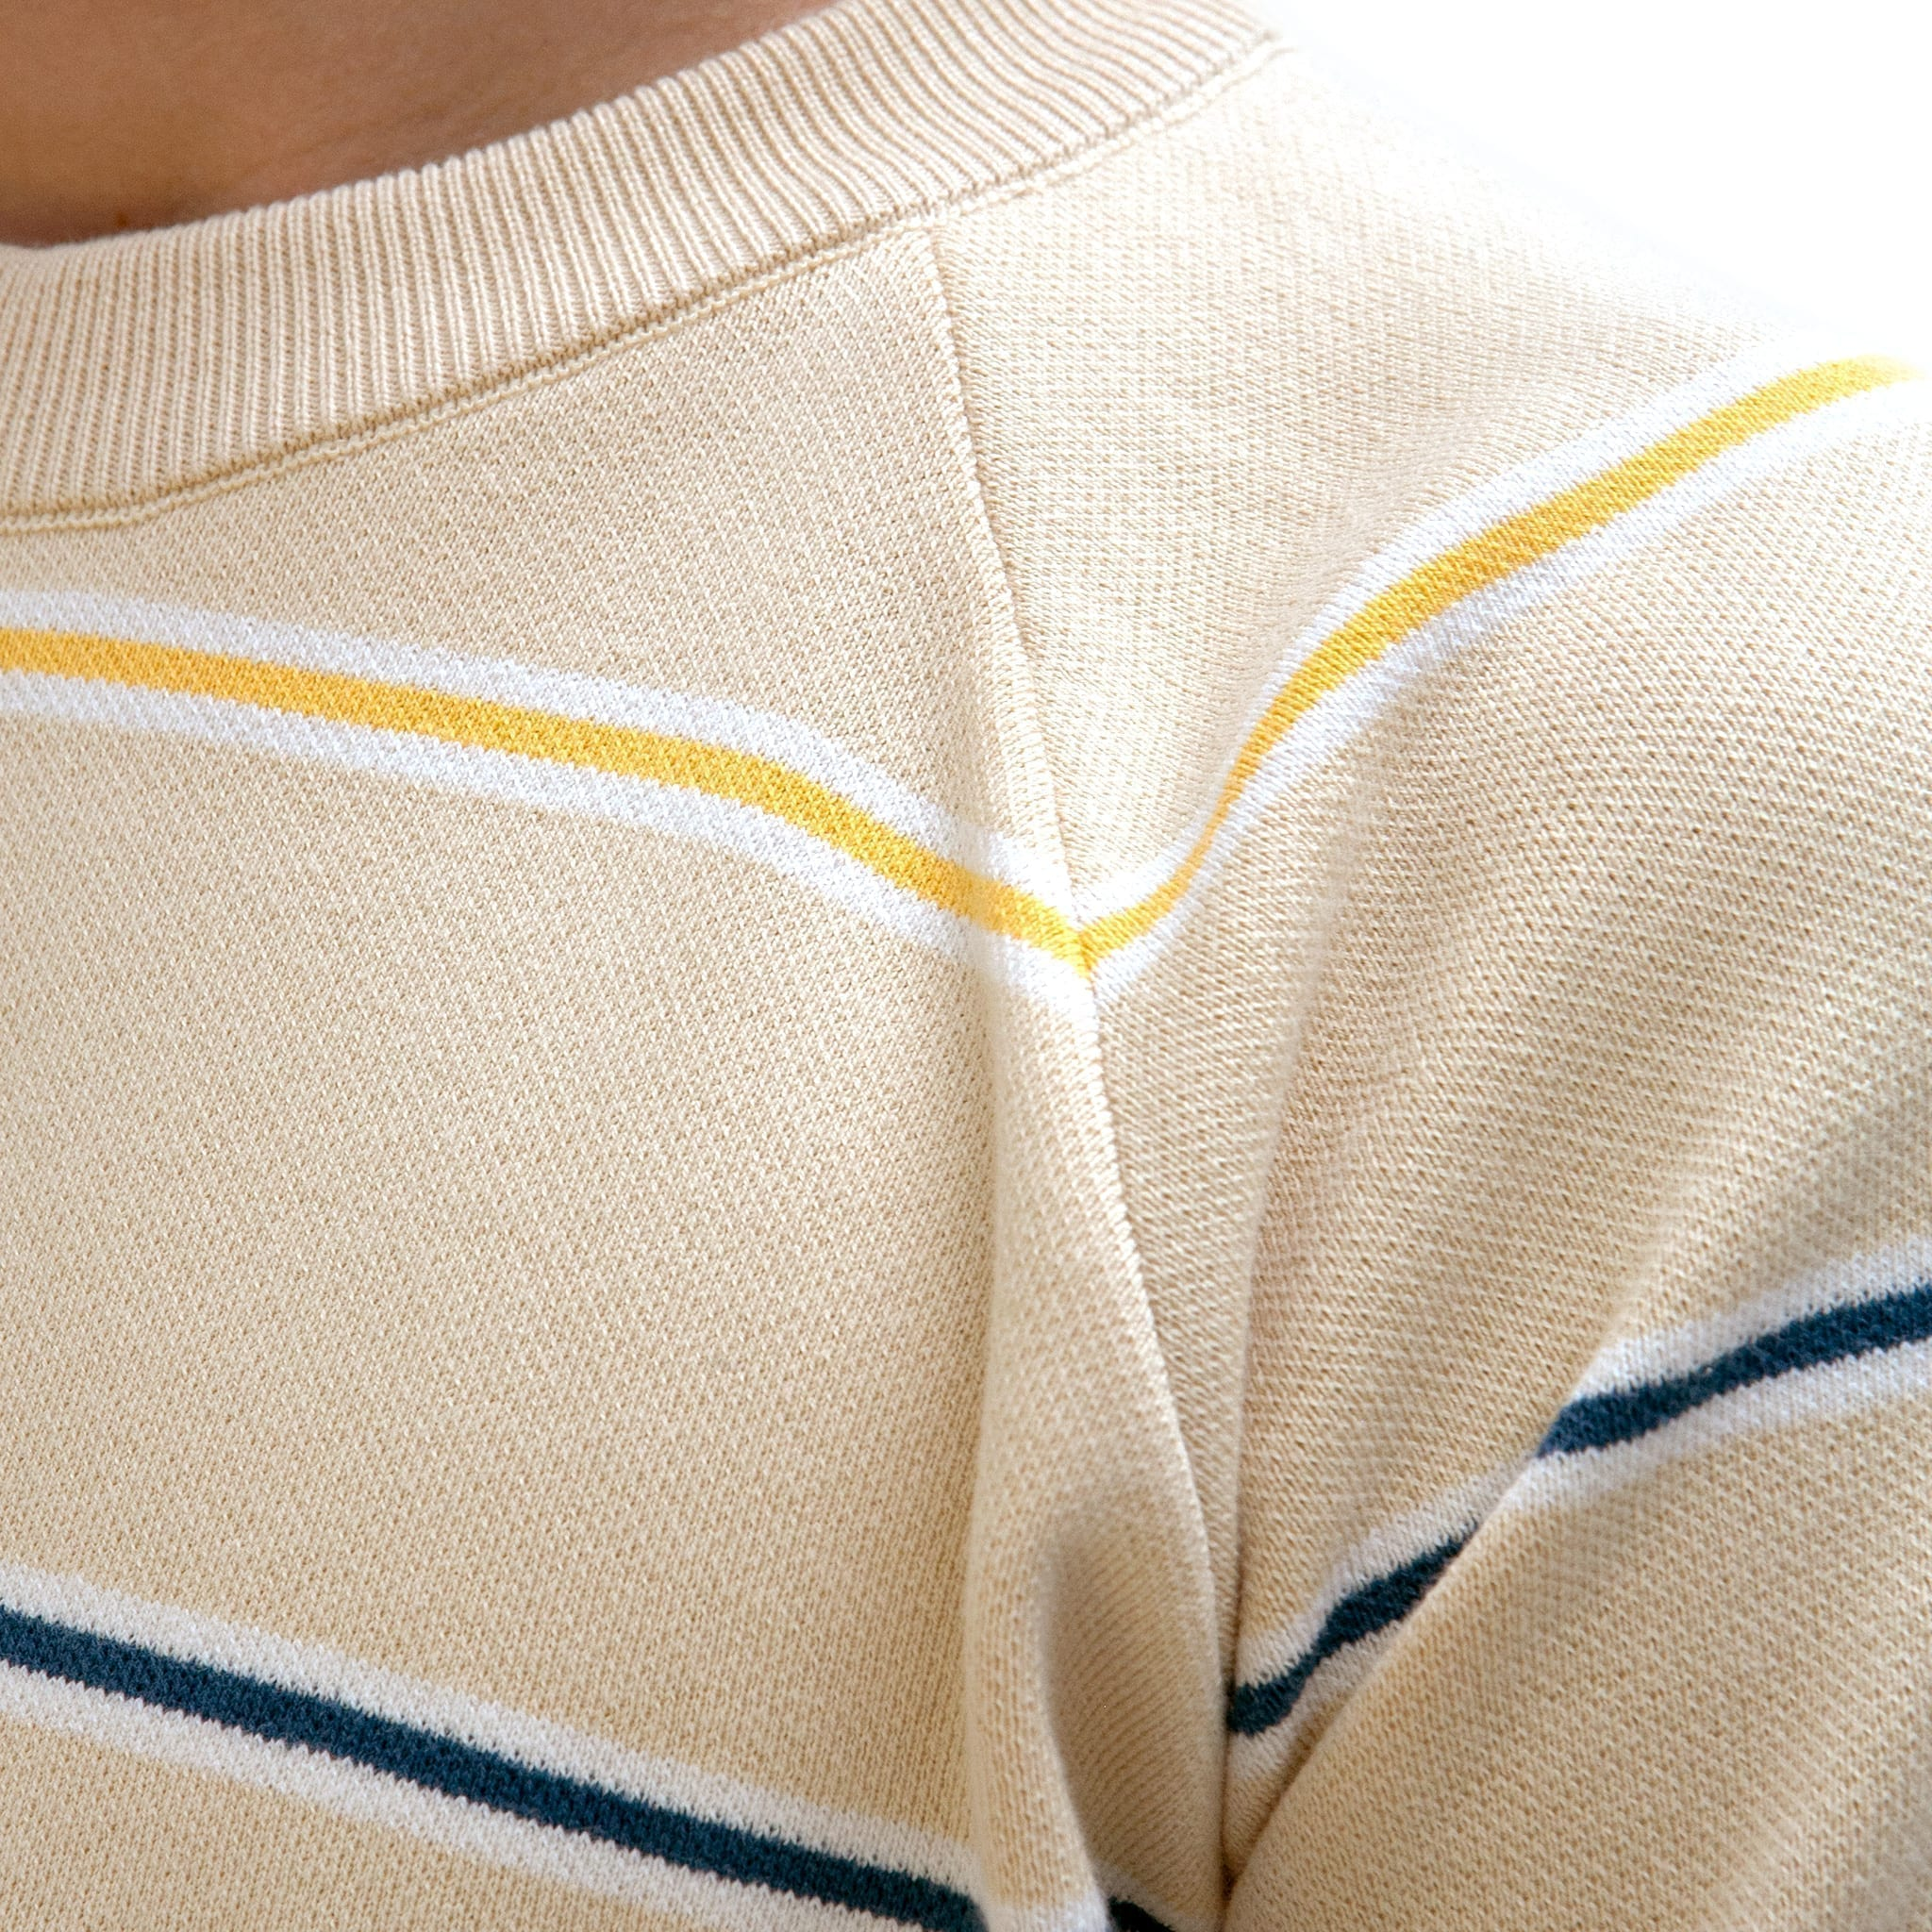 Far Afield Carrol Raglan Knit a Lambs White Stripes Organic Cotton Fabric Casual Basics 3